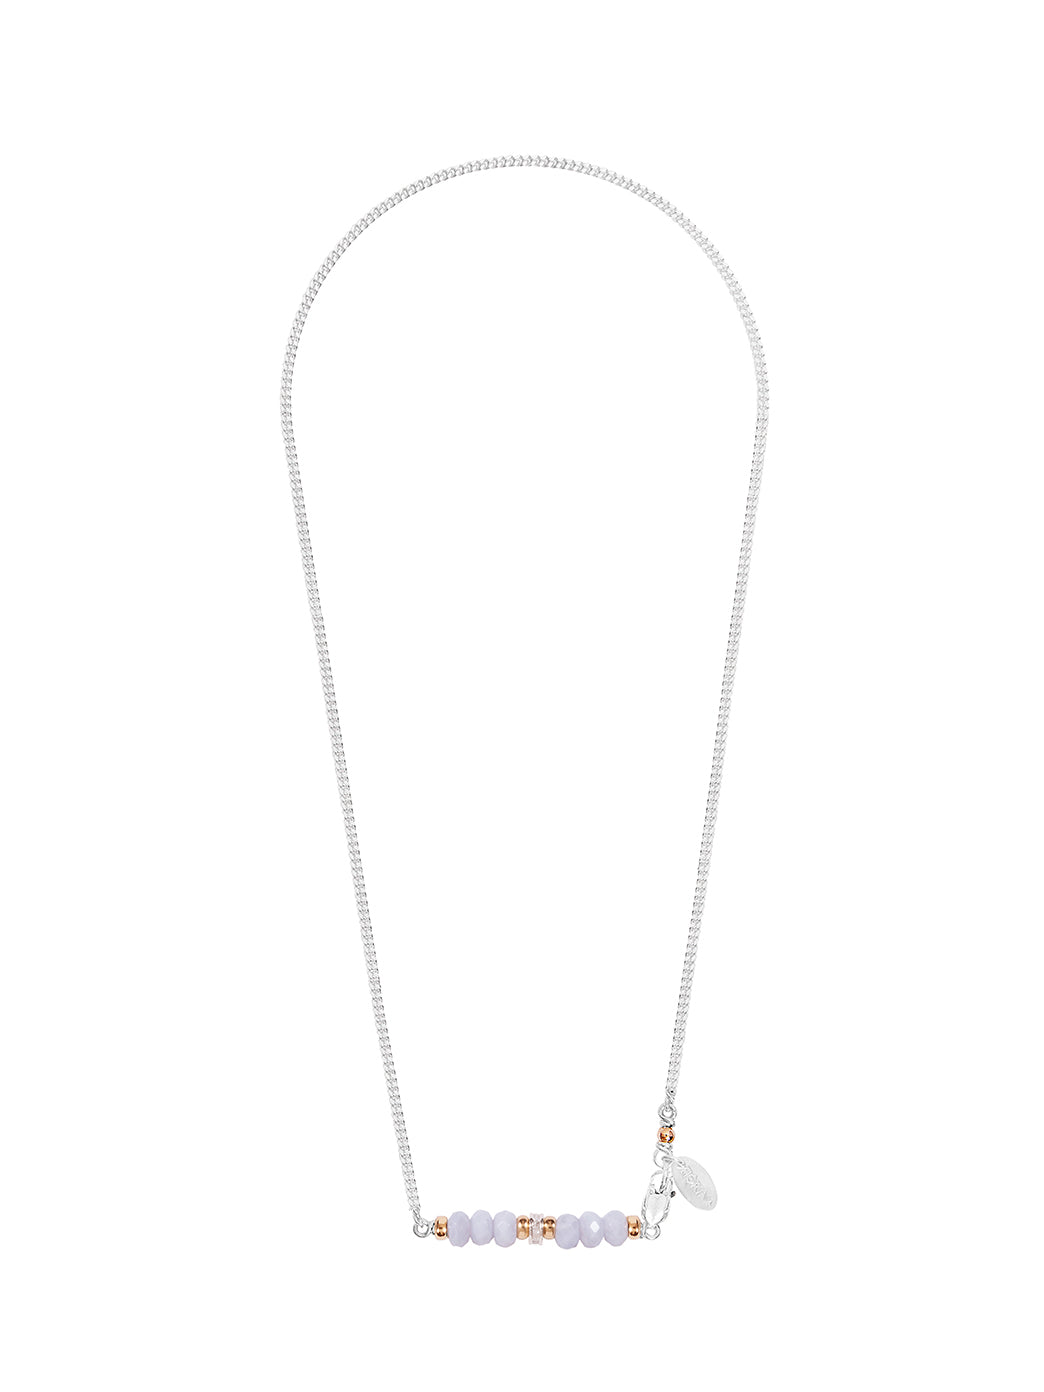 Fiorina Jewellery Silver Romance Necklace Chalcedony Faceted